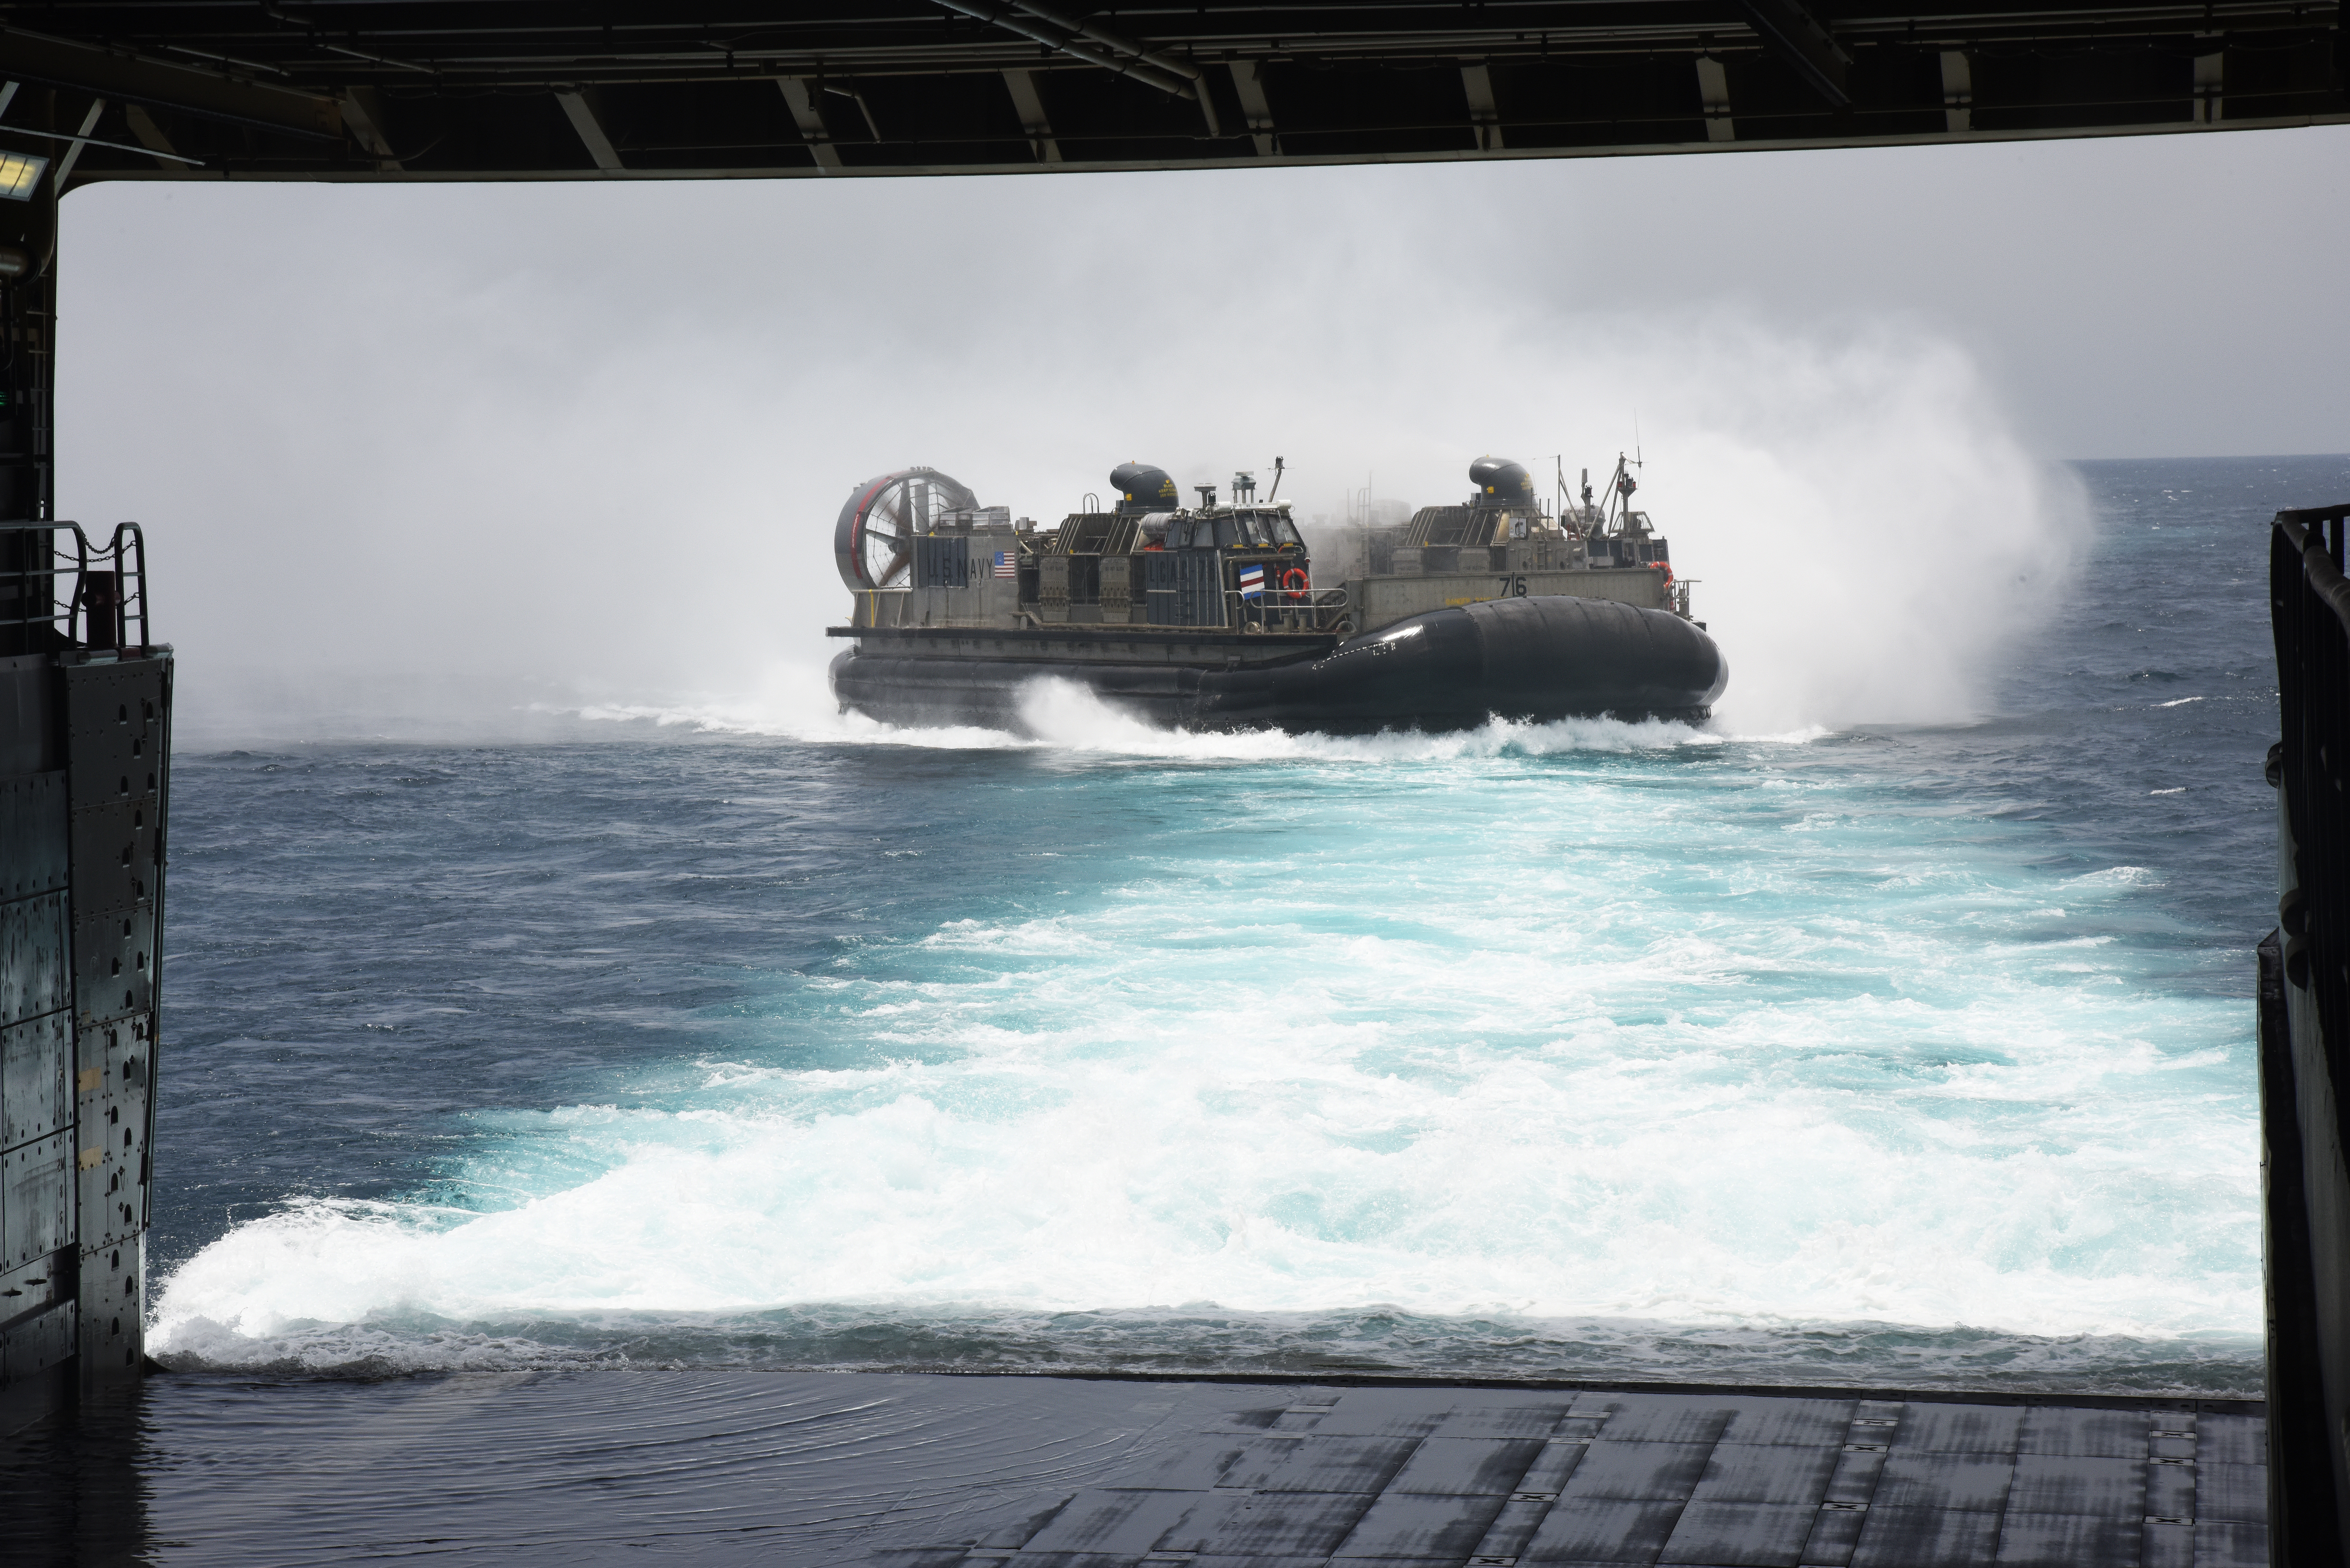 A U.S. Navy Landing Craft Air Cushion (LCAC) approaches the USS Anchorage in Arta, Djibouti, July 20, 2015. The LCAC delivered U.S. Marines and equipment from the U.S. Navy vessel to Arta Beach, to do sustainment training.  (U.S. Air Force photo by Staff Sgt. Maria Bowman)